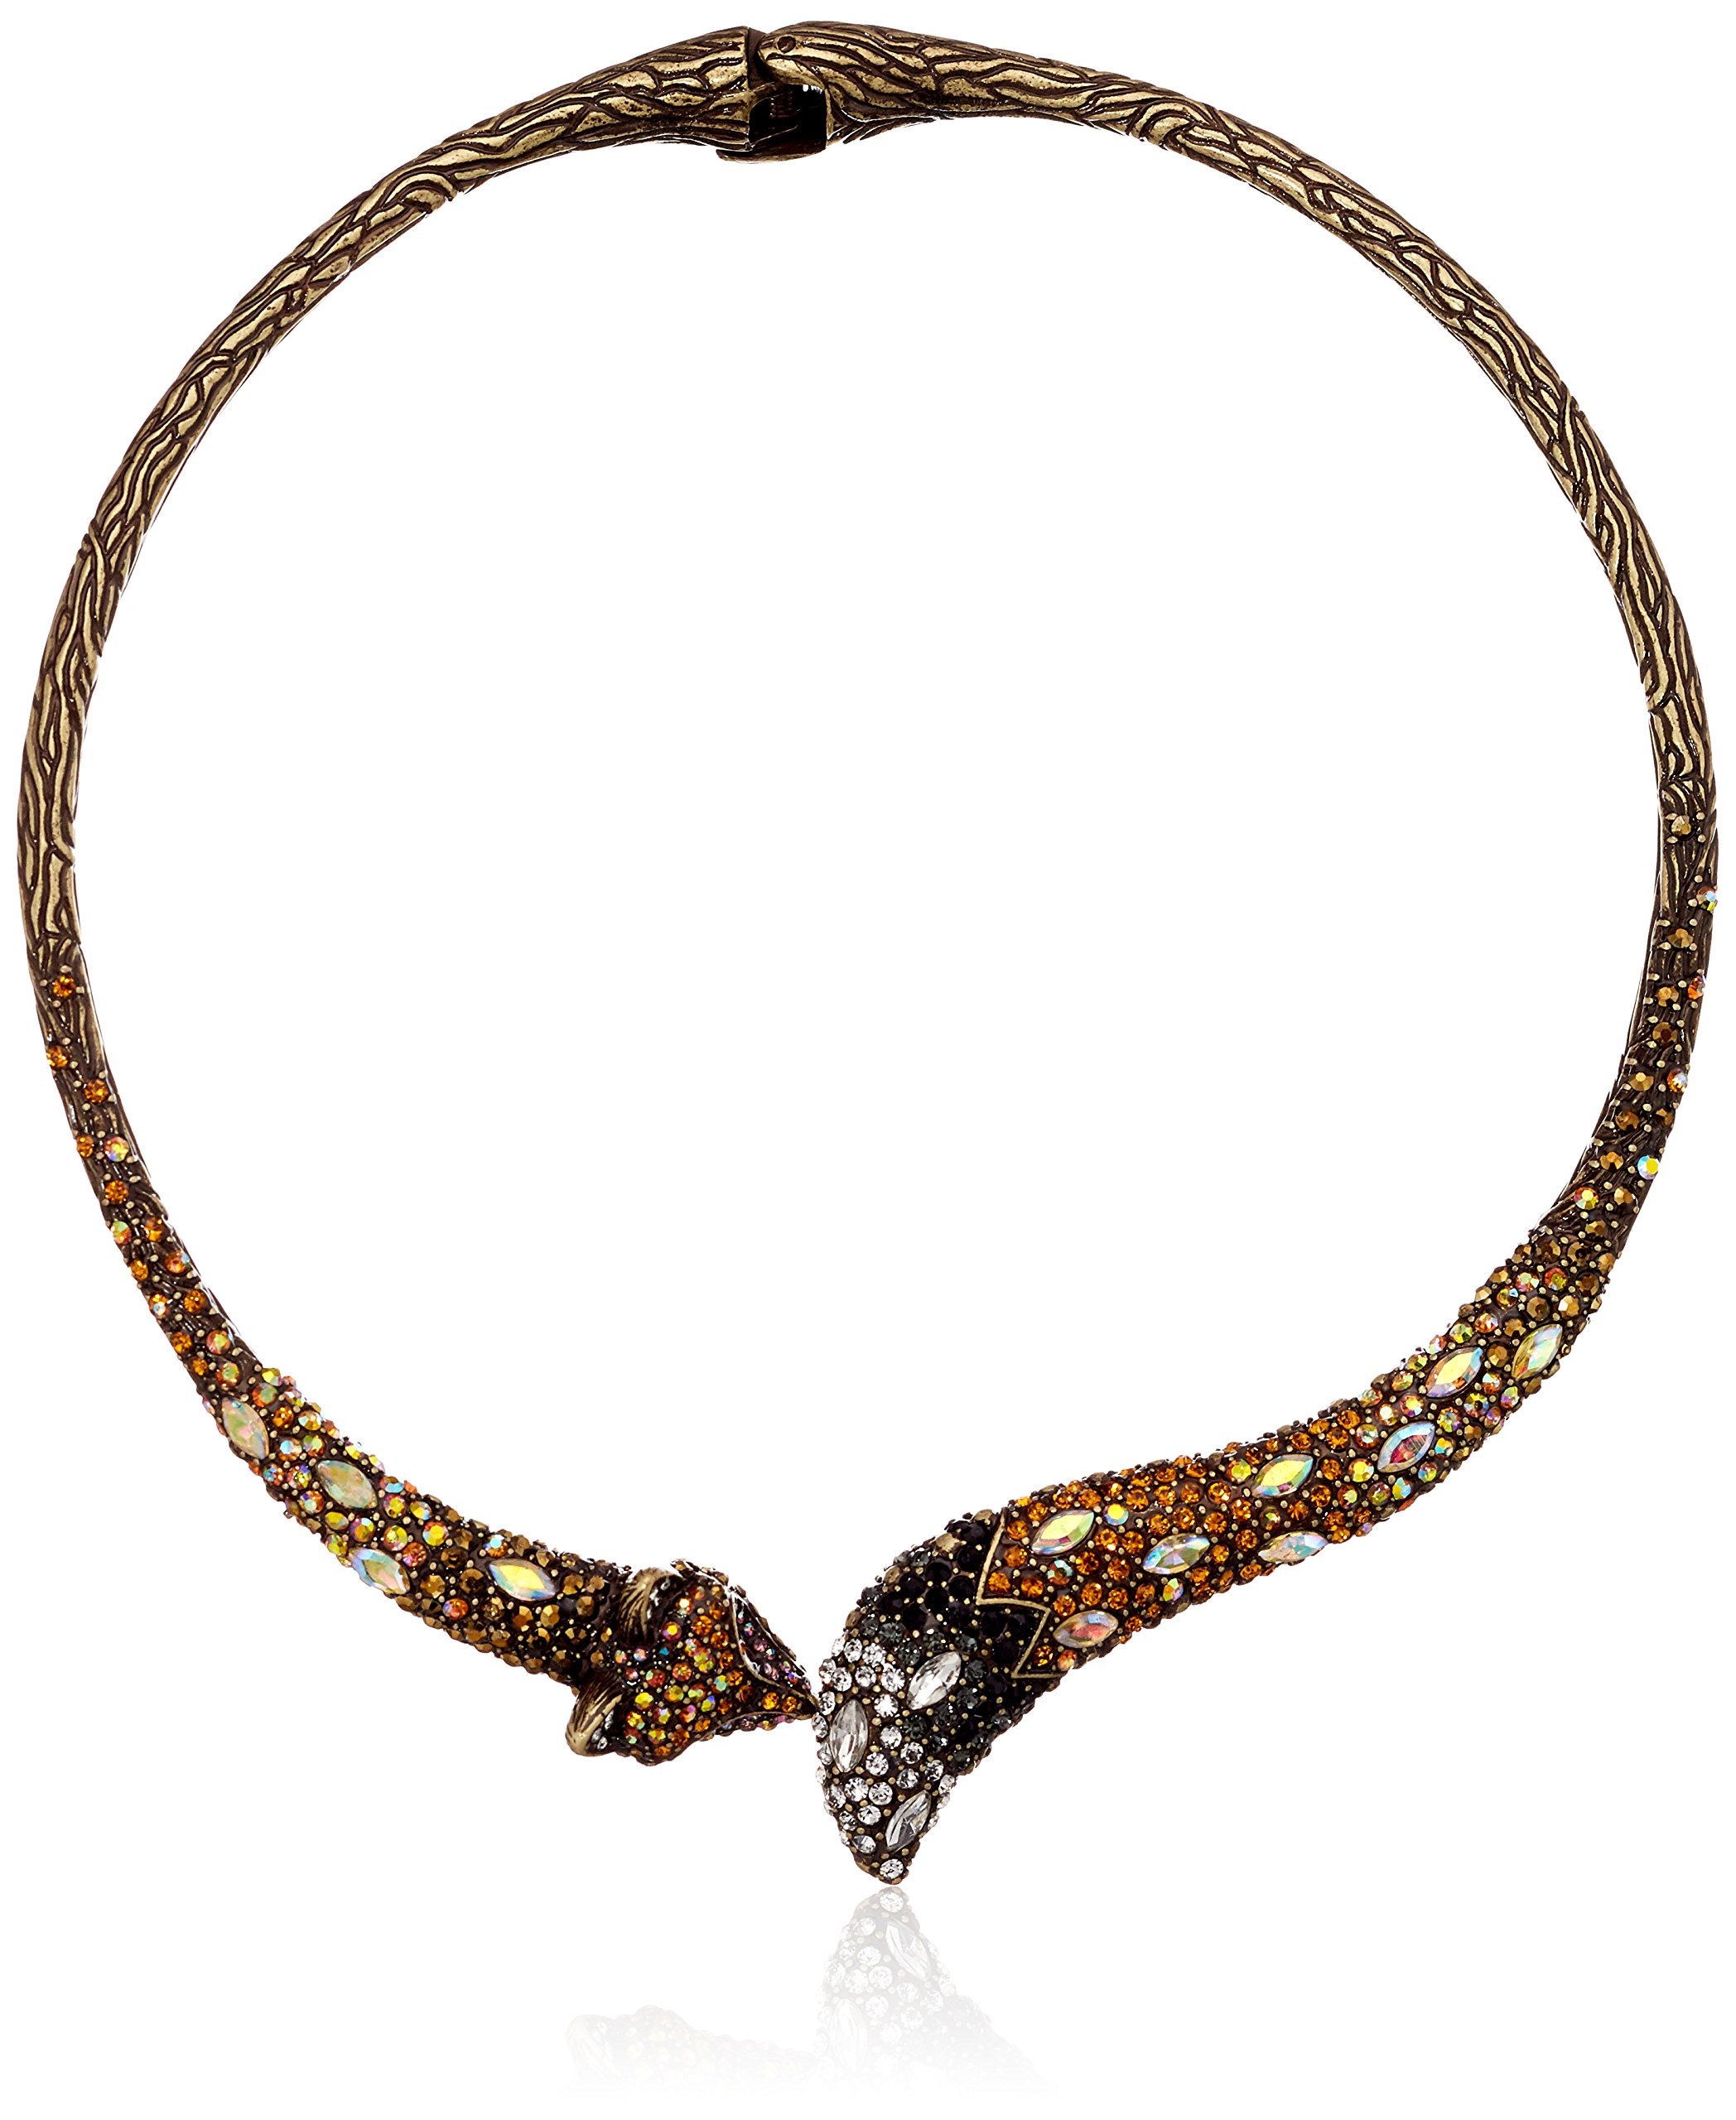 Betsey Johnson Surreal Forest Fox Hinge Collar Necklace